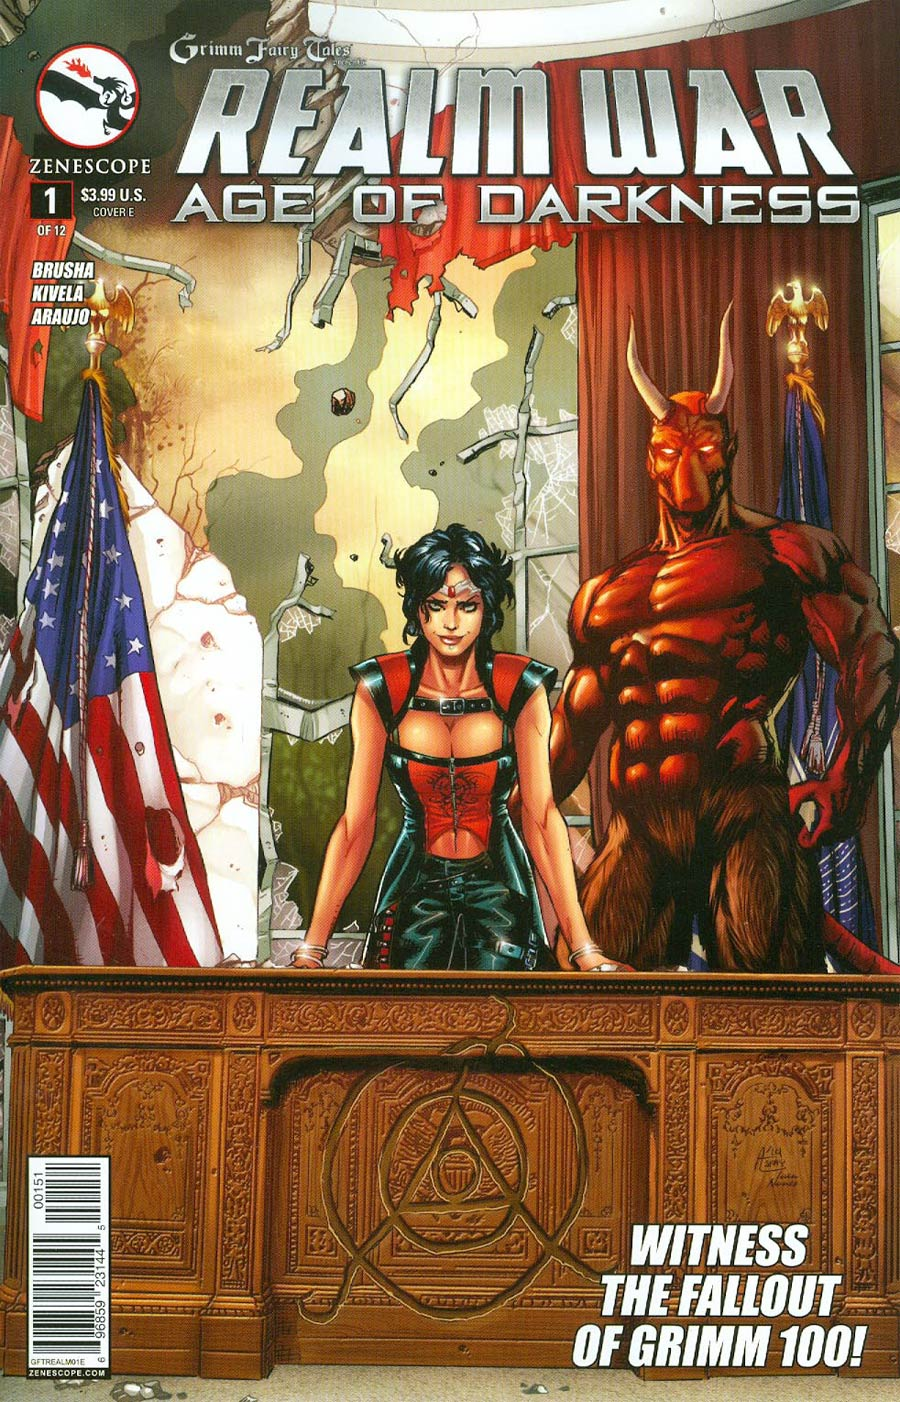 Grimm Fairy Tales Presents Realm War #1 Cover E Anthony Spay (Age Of Darkness Tie-In)